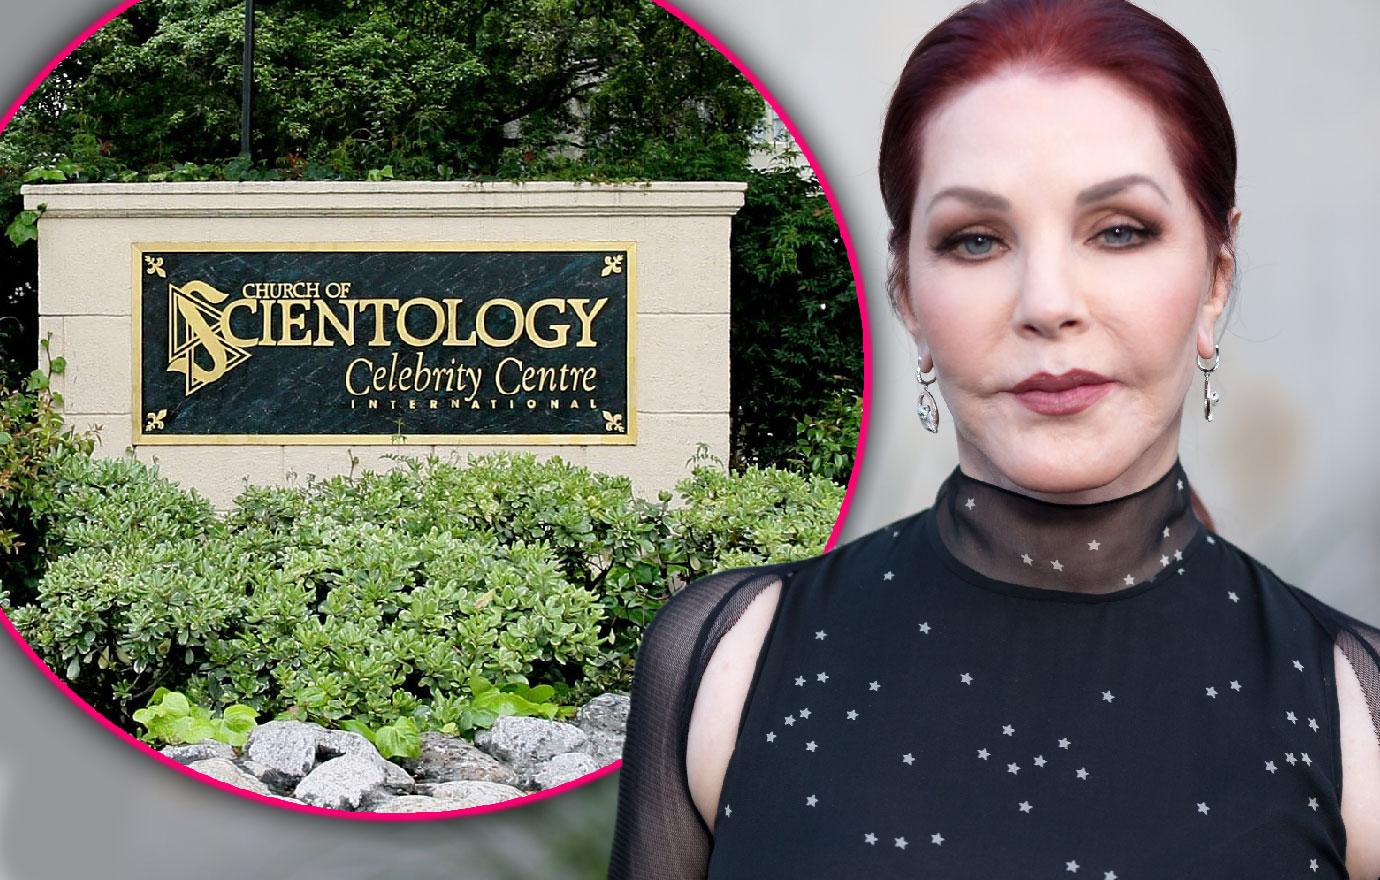 priscilla presley quits scientology after 40 year